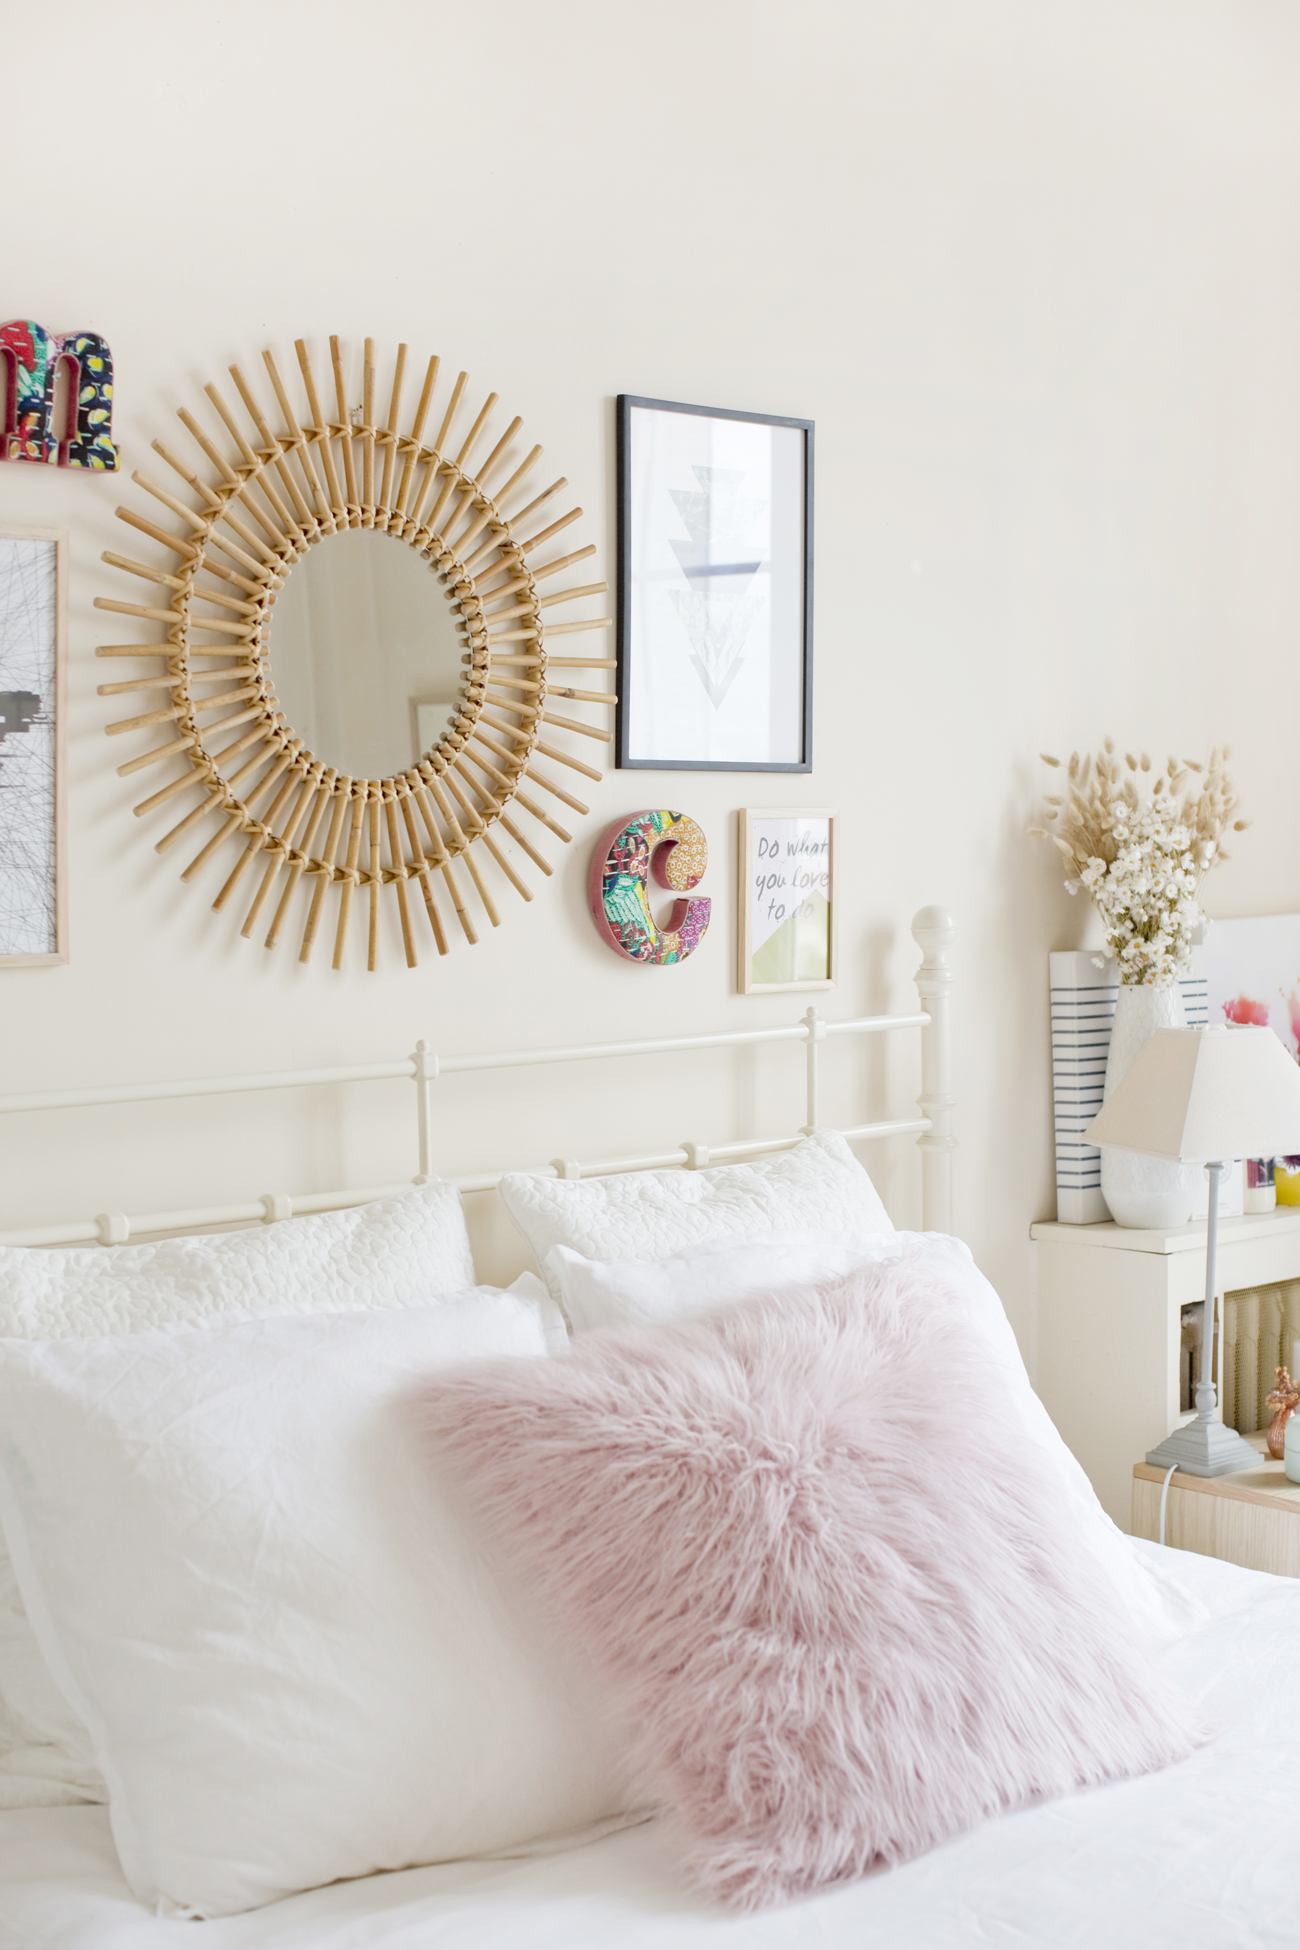 Awesome chambre cocooning rose pale images design trends for Chambre rose pale